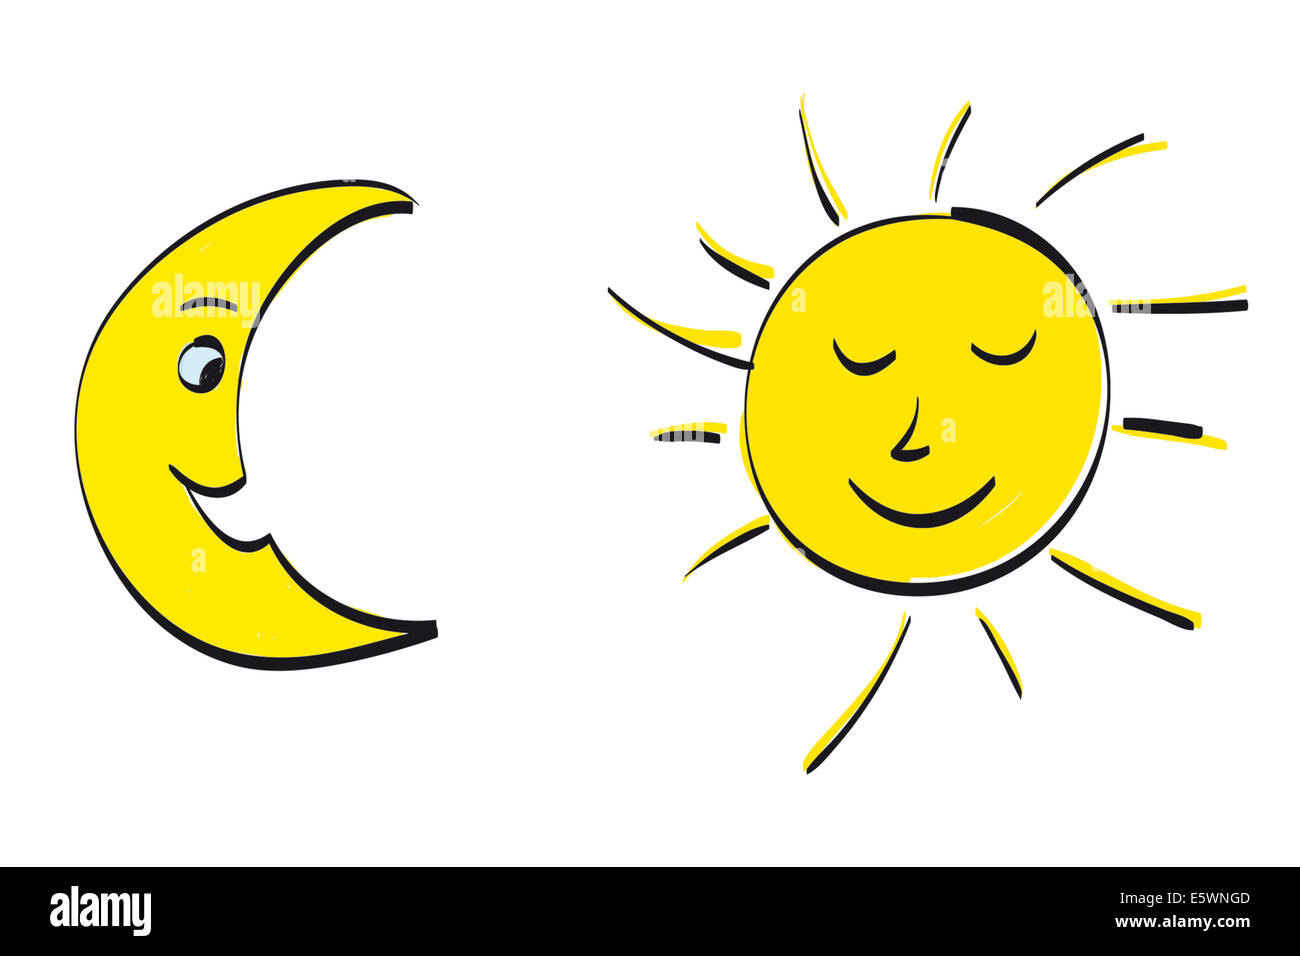 Sun and Moon - Stock Image